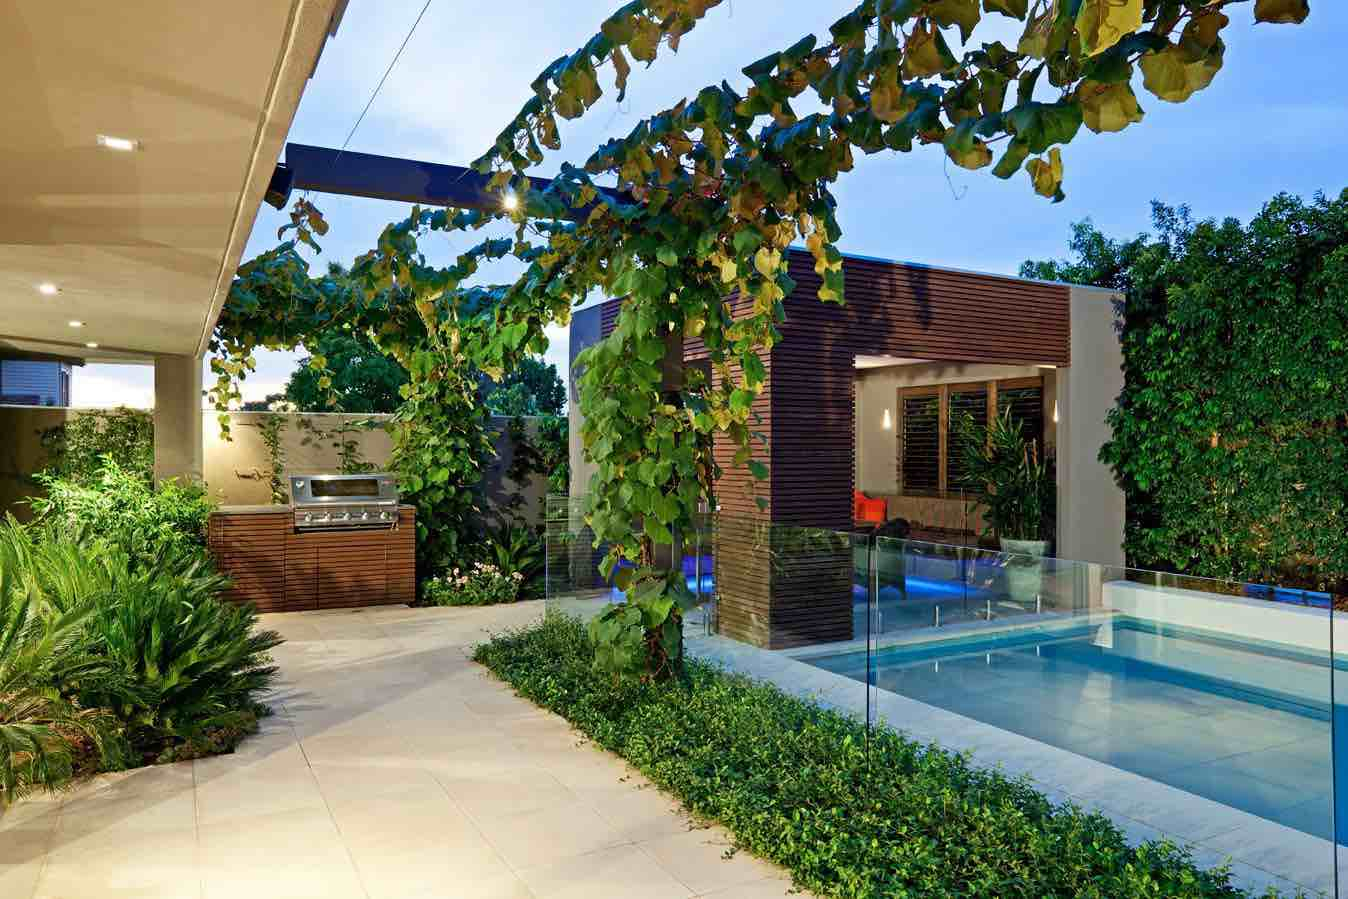 41 backyard design ideas for small yards worthminer for Pool design ideas for small backyards